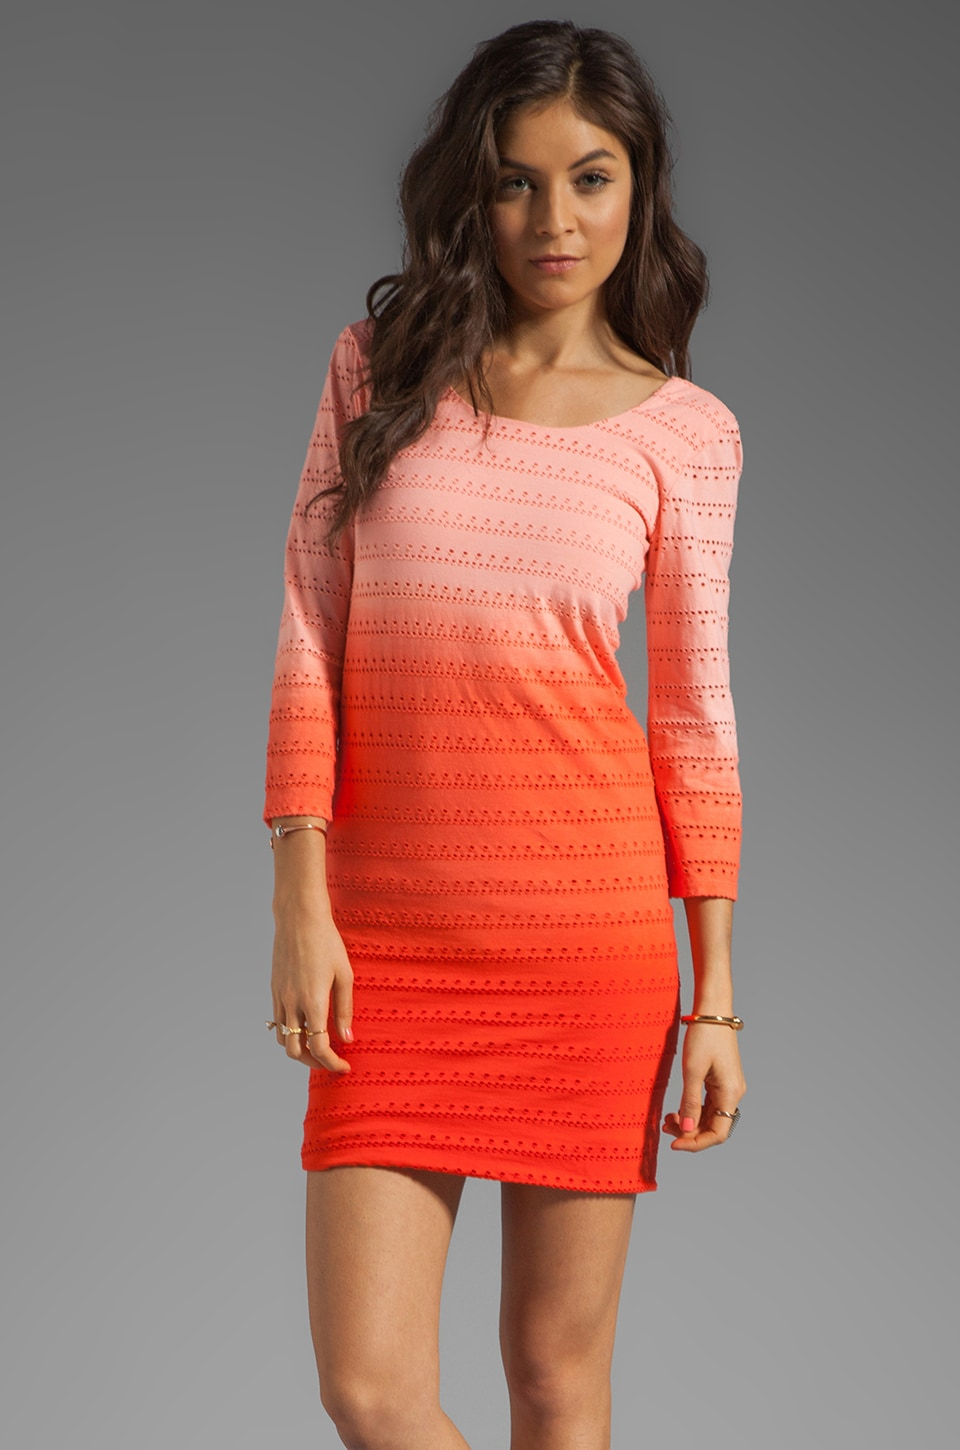 MONROW Ombre Eyelet Jersey Dress in Nectar